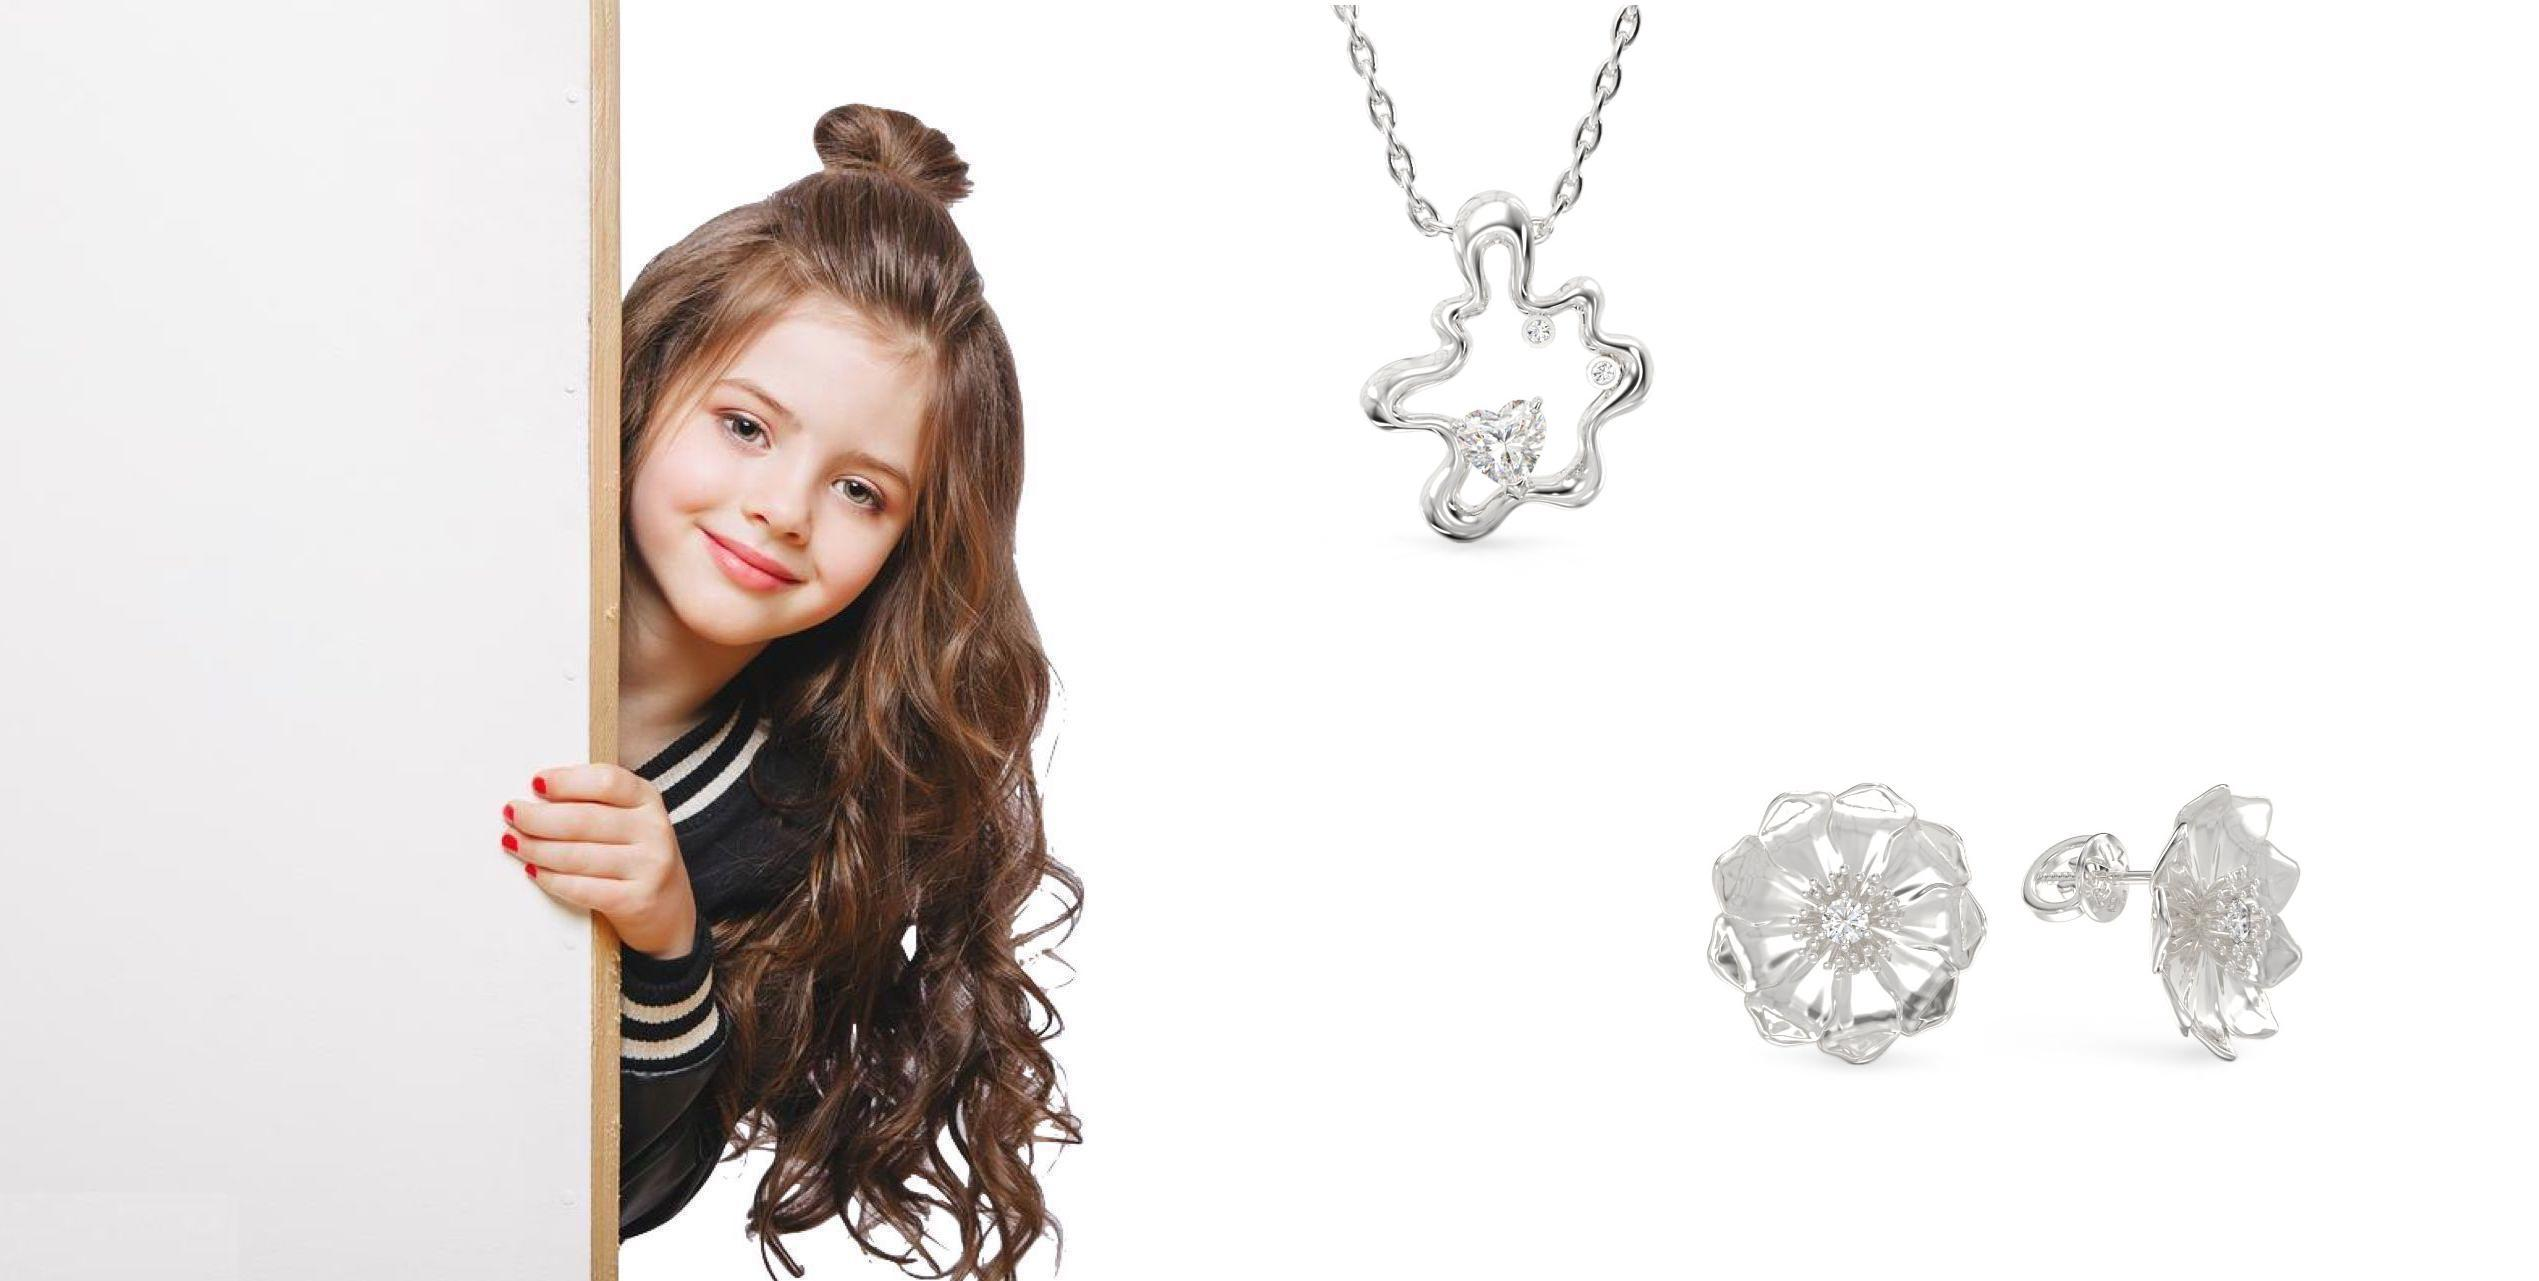 For Children Gold Jewelry Brivizo Spain Europe